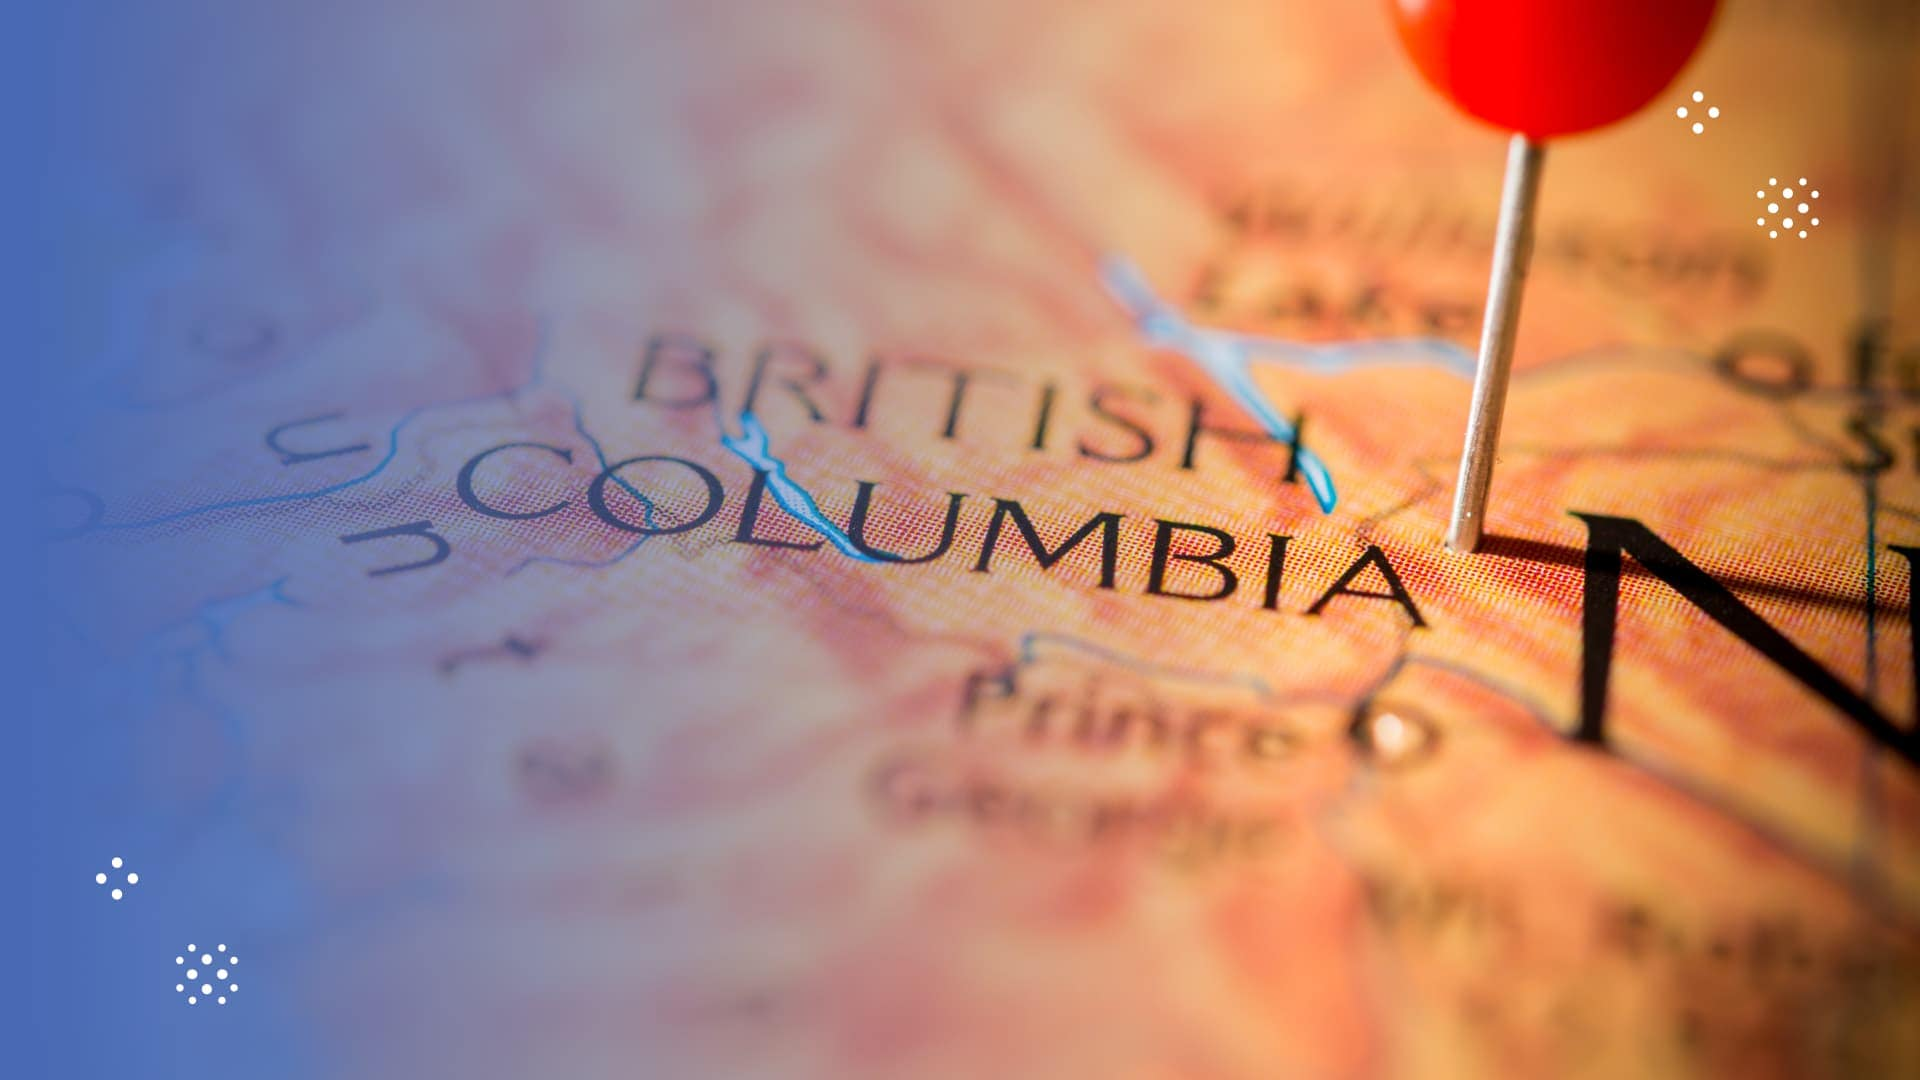 pin dropped on map of British Columbia